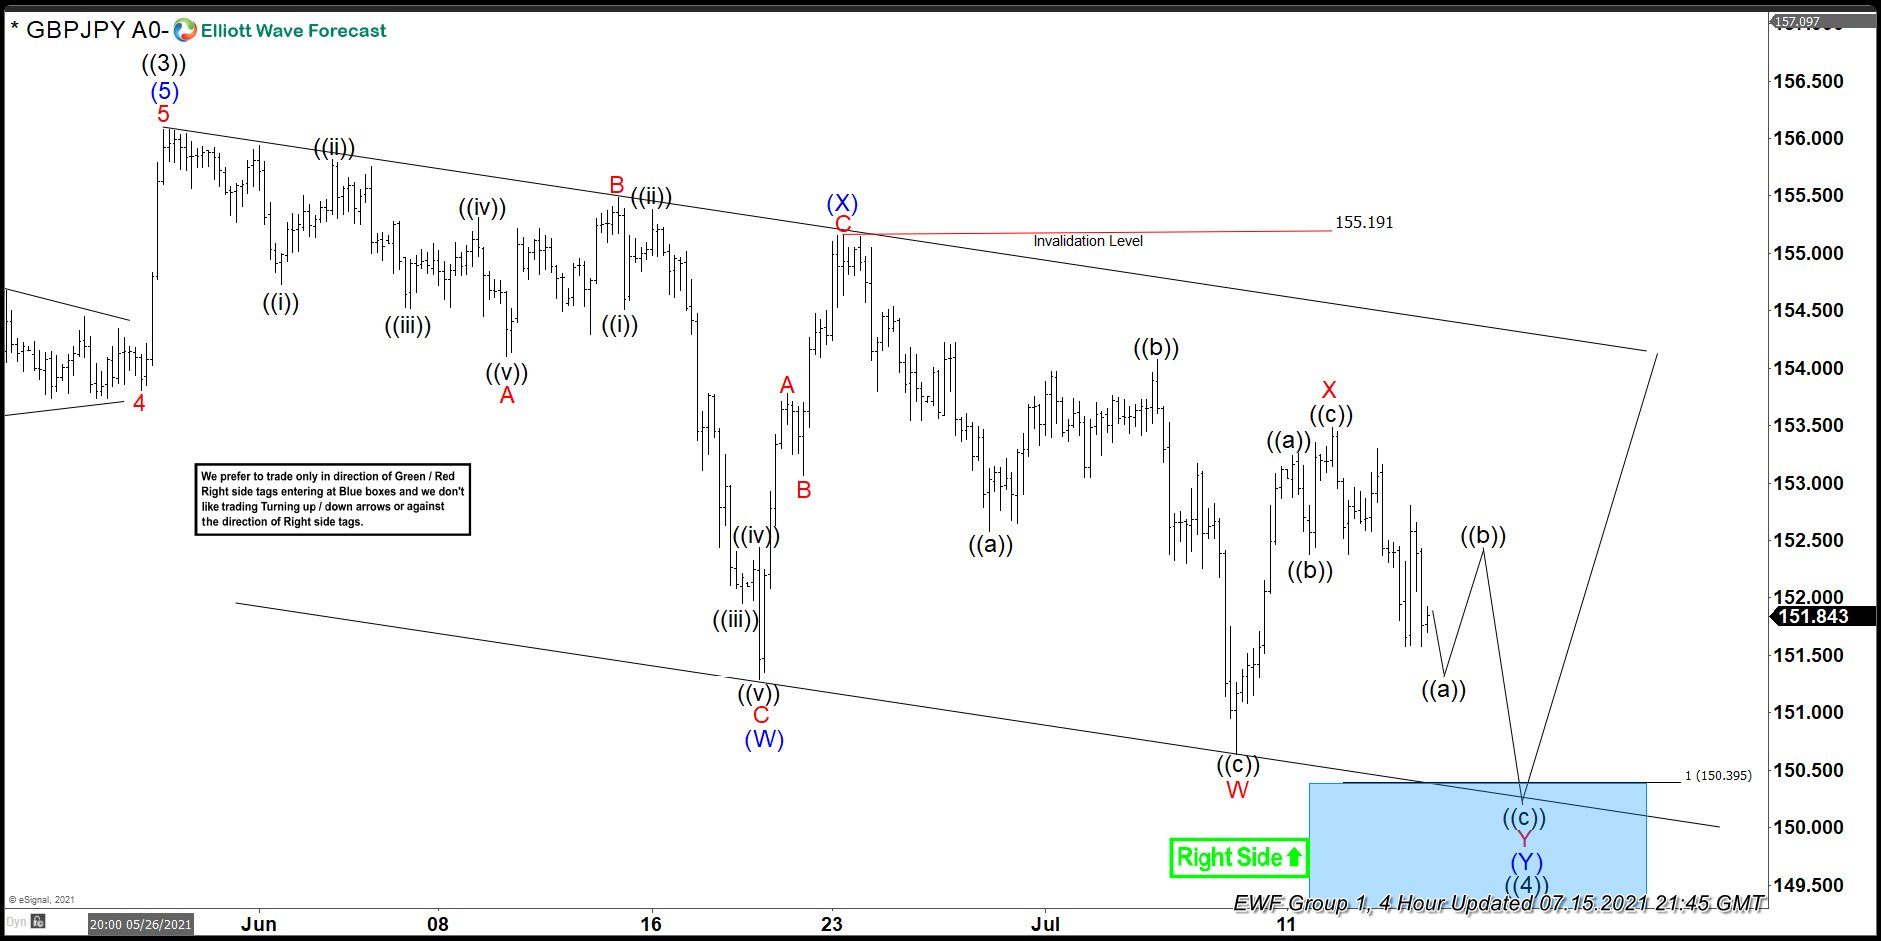 GBPJPY: Buying The Dips After Elliott Wave Double Three Pattern